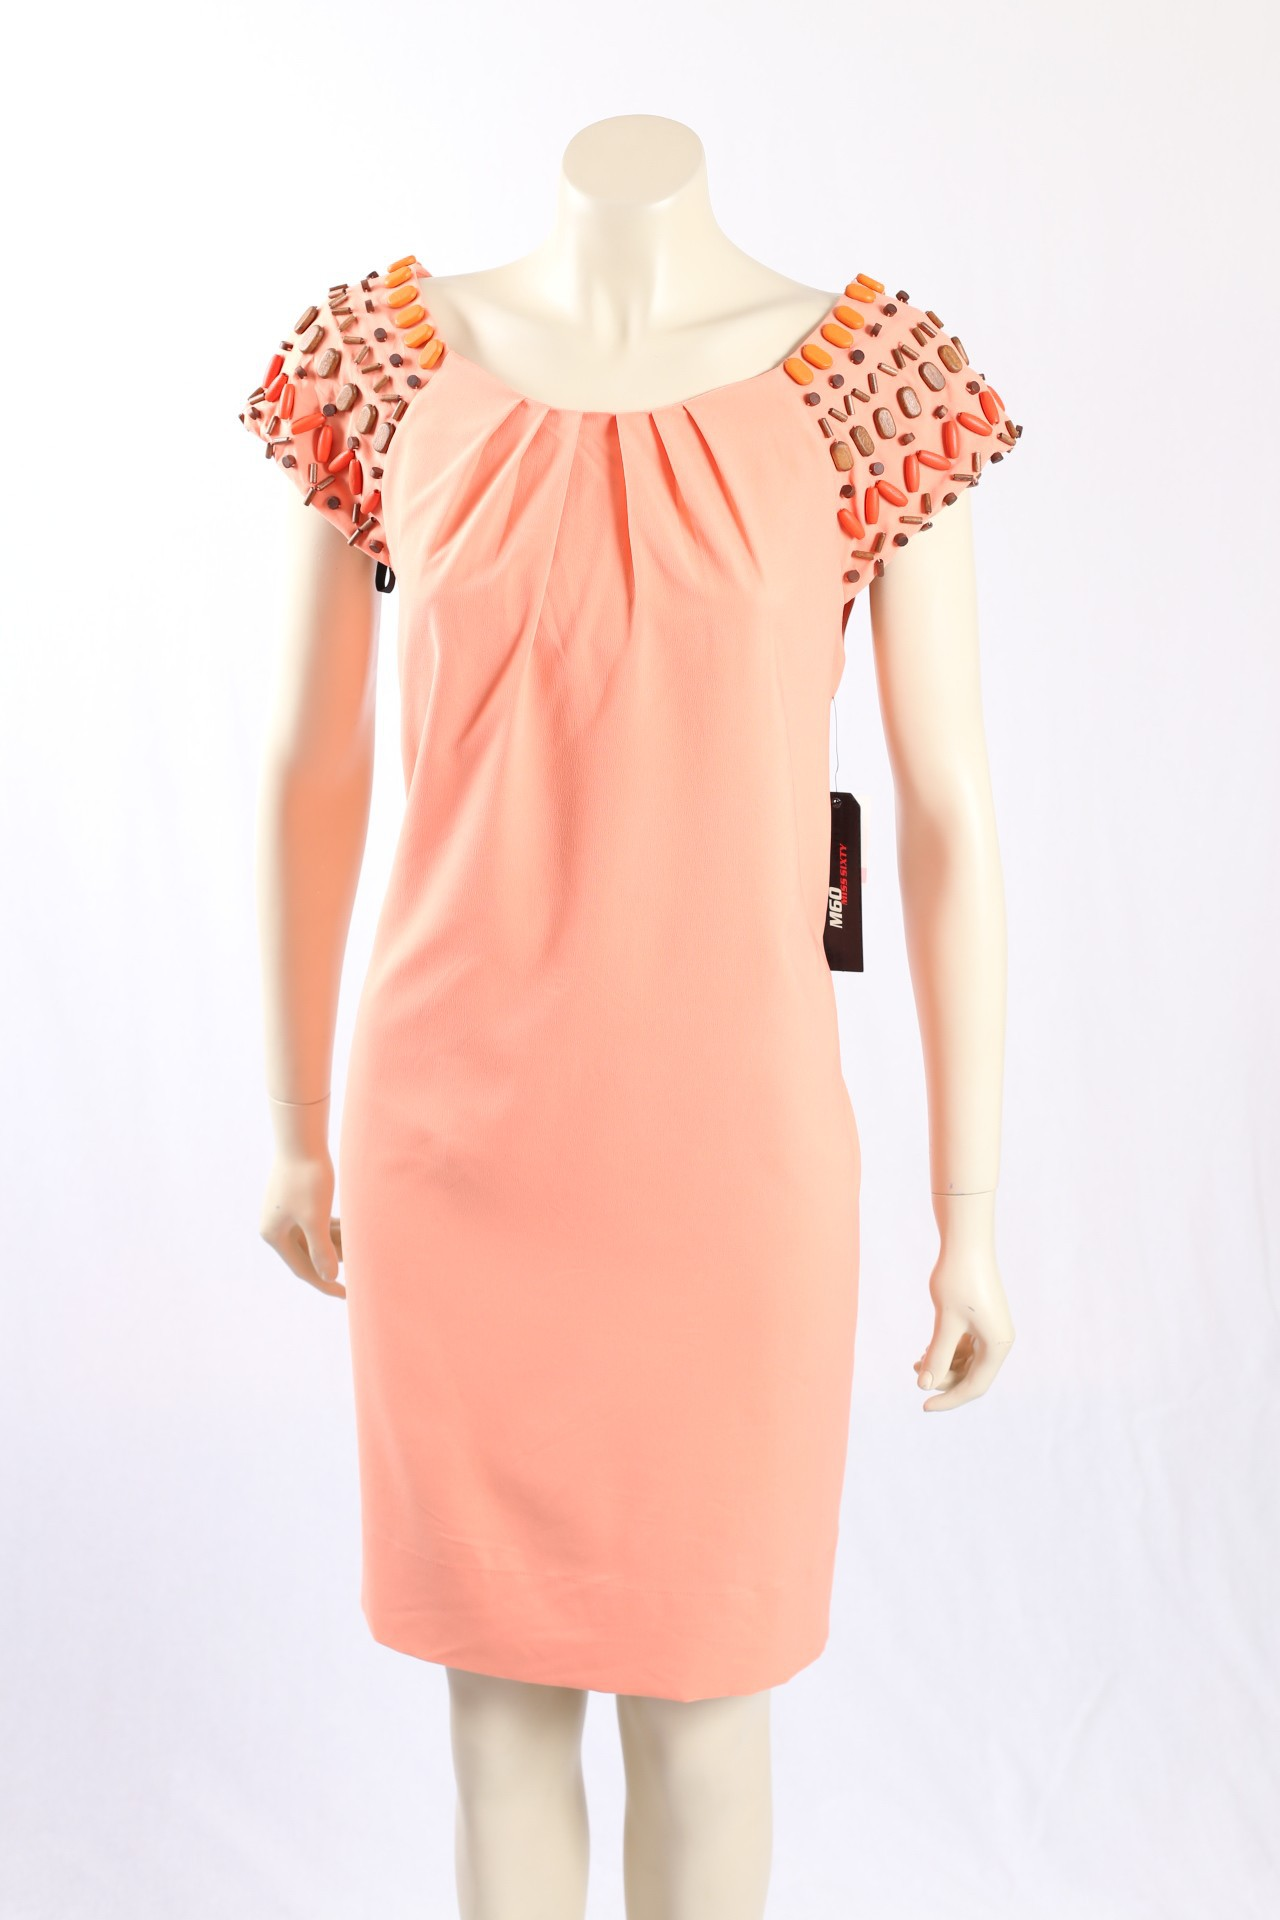 f18e970c4e2 Miss Sixty -Size12 14 Peach Casual dress w  beading. Loading zoom